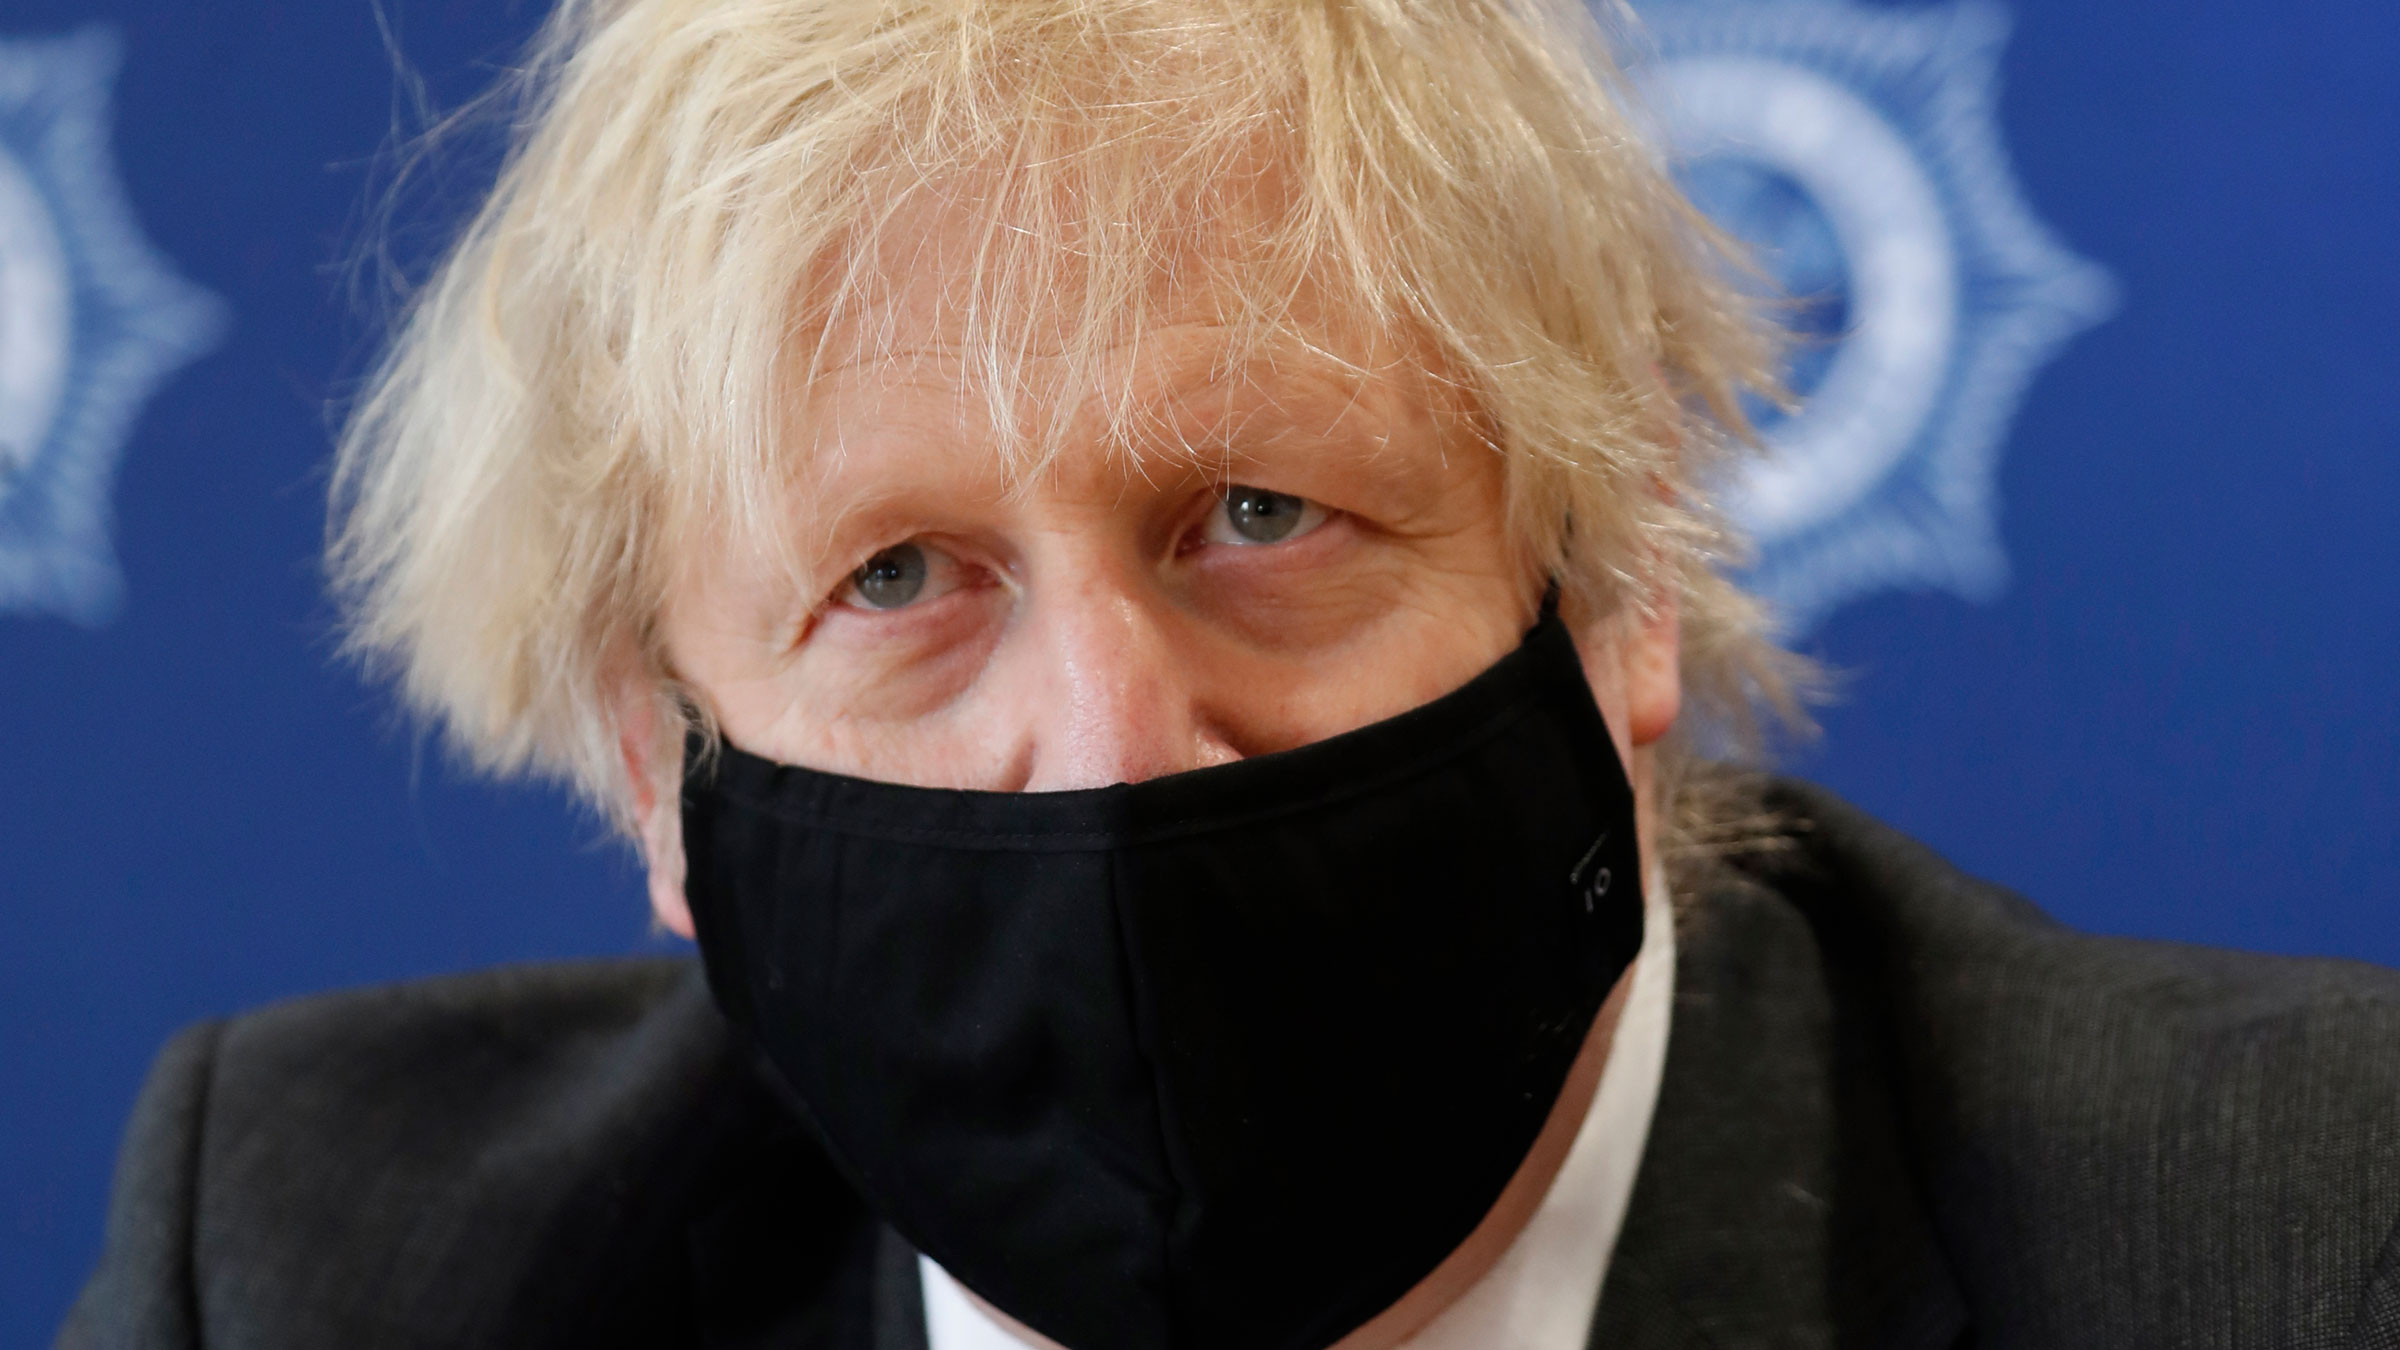 British Prime Minister Boris Johnson visits the South Wales Police Headquarters in Bridgend, Wales, on Wednesday.